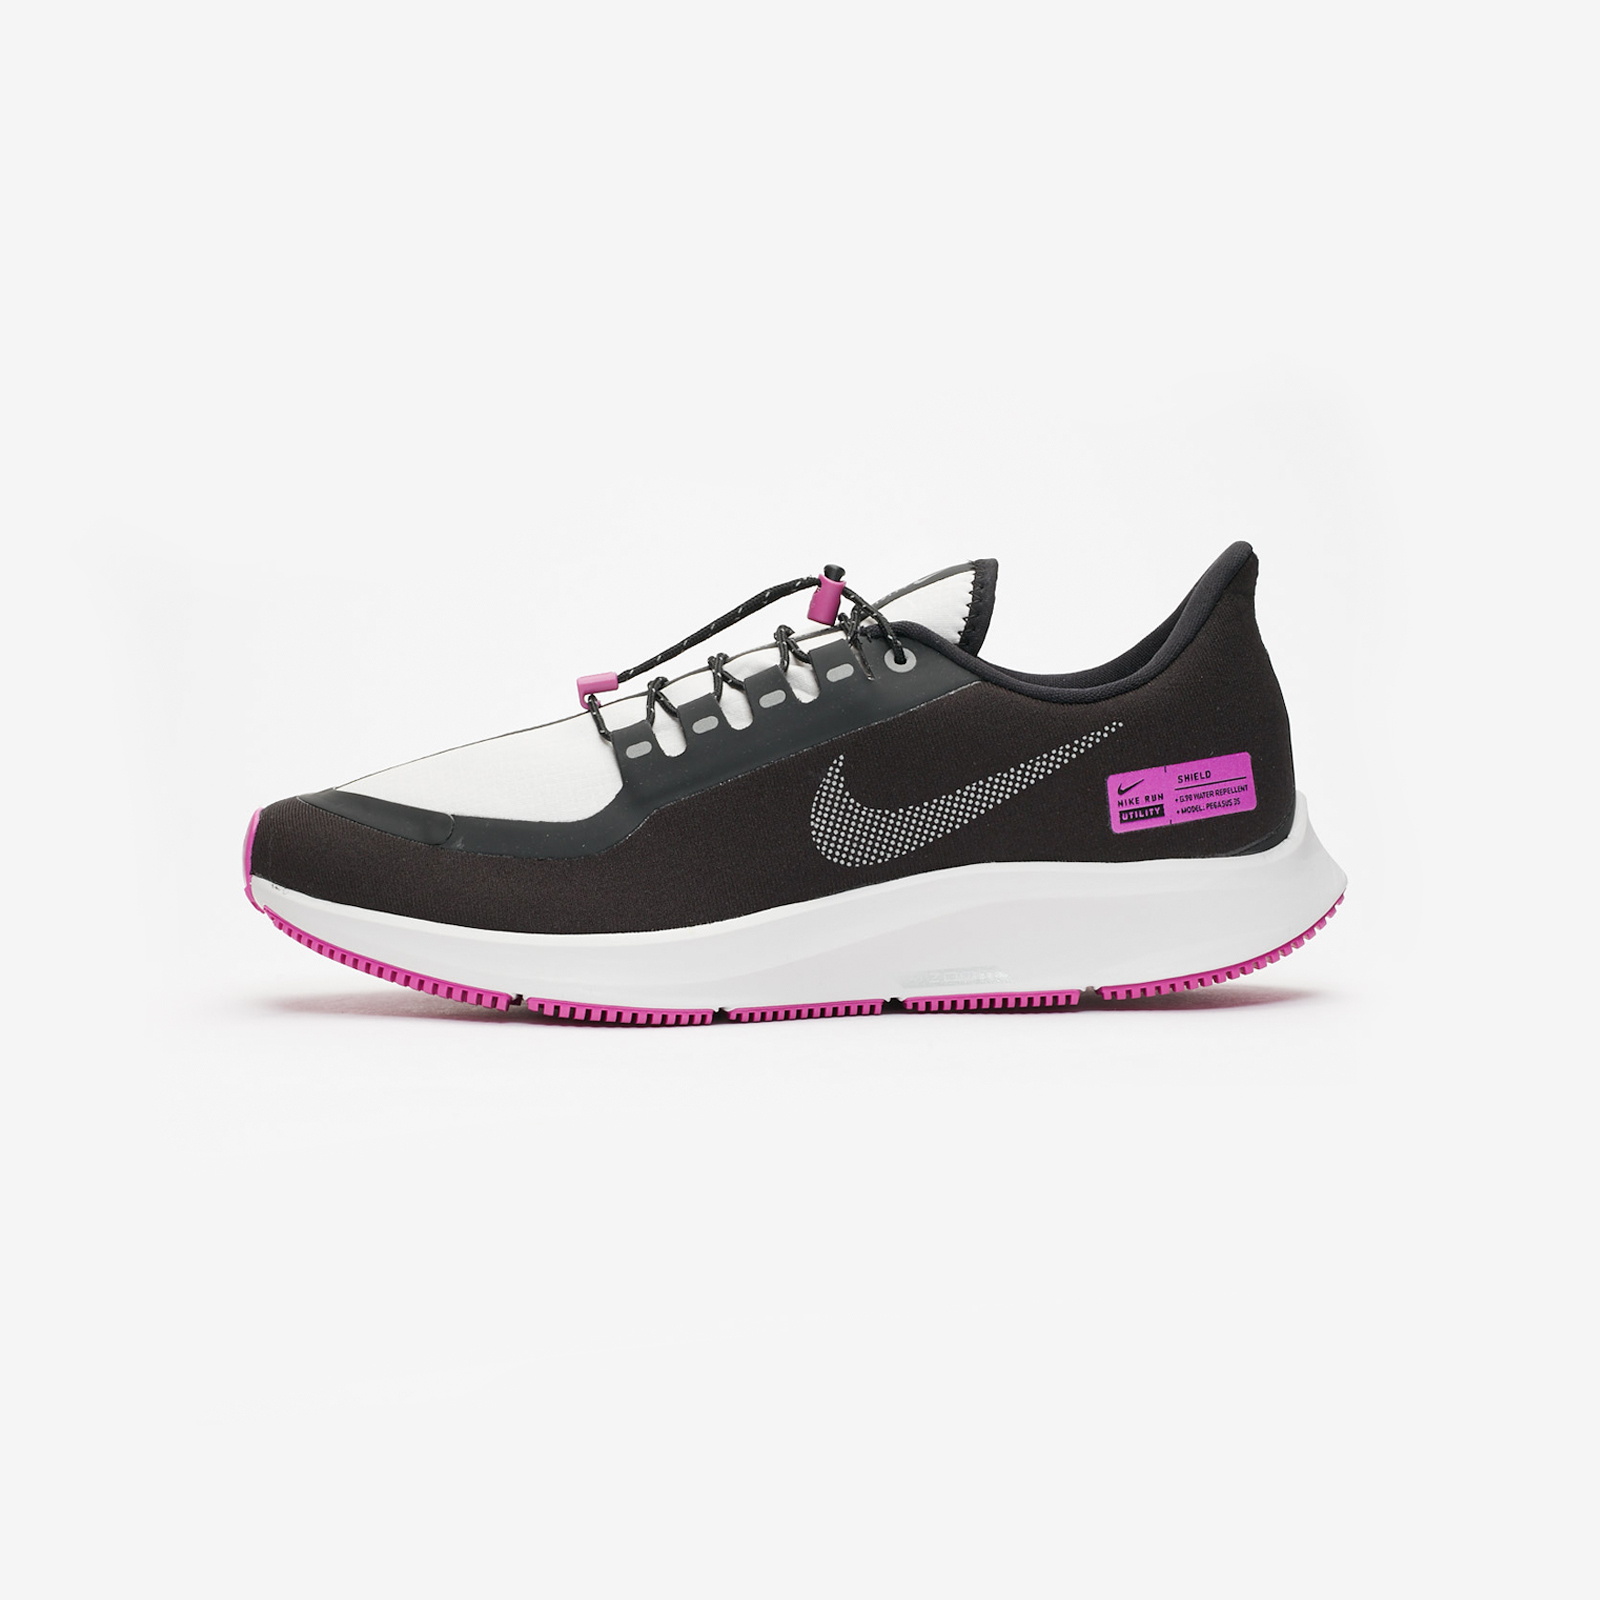 7477aa9716b0 Nike Air Zoom Pegasus 35 Shield NRG - Bq9779-001 - Sneakersnstuff ...